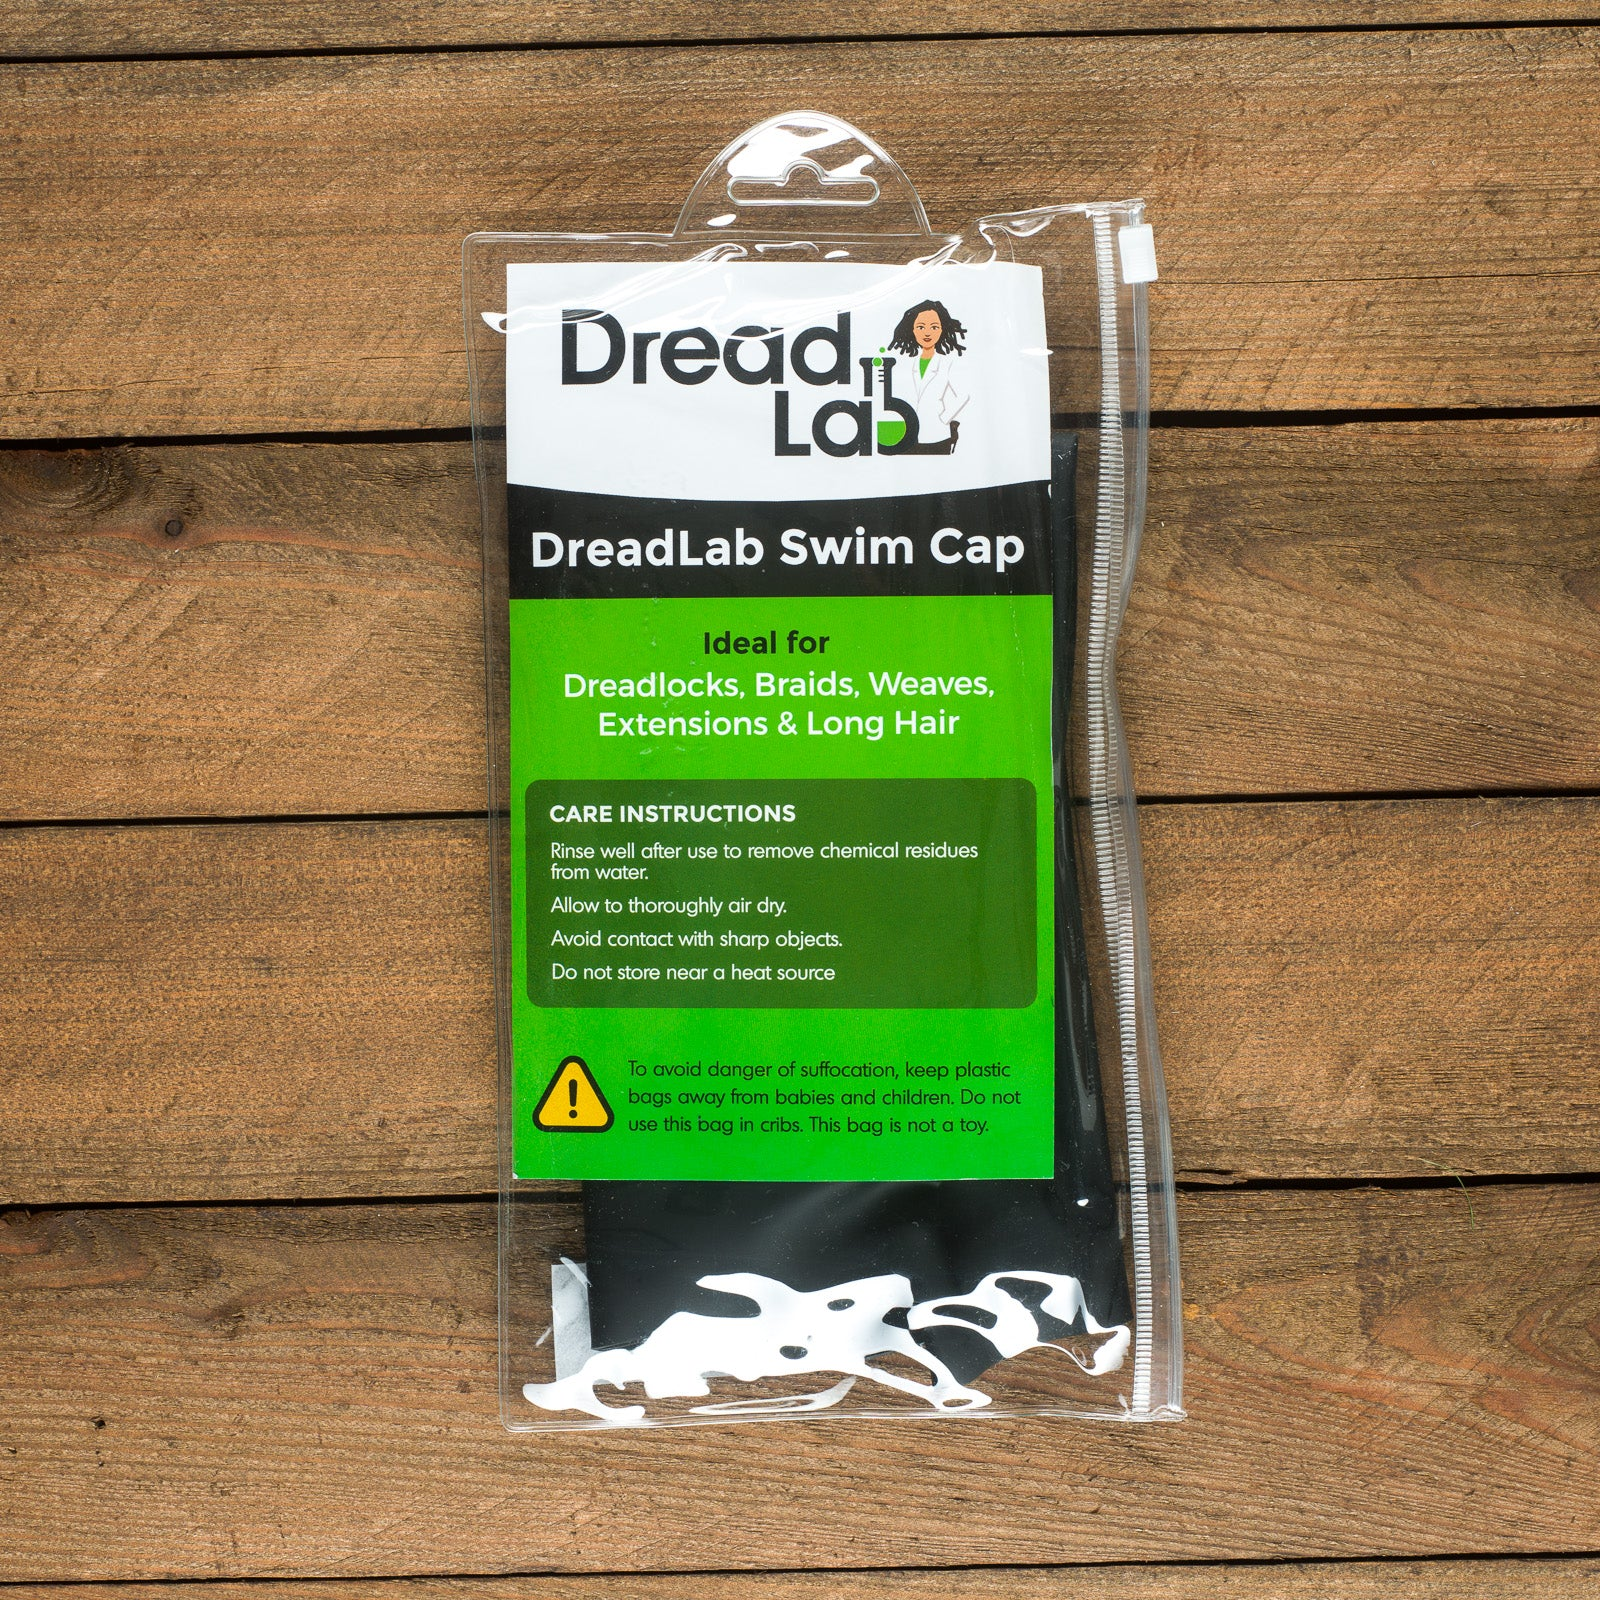 DreadLab - Extra Large Swim Cap (Black) Dreadlocks/Braids/Weaves/Extensions